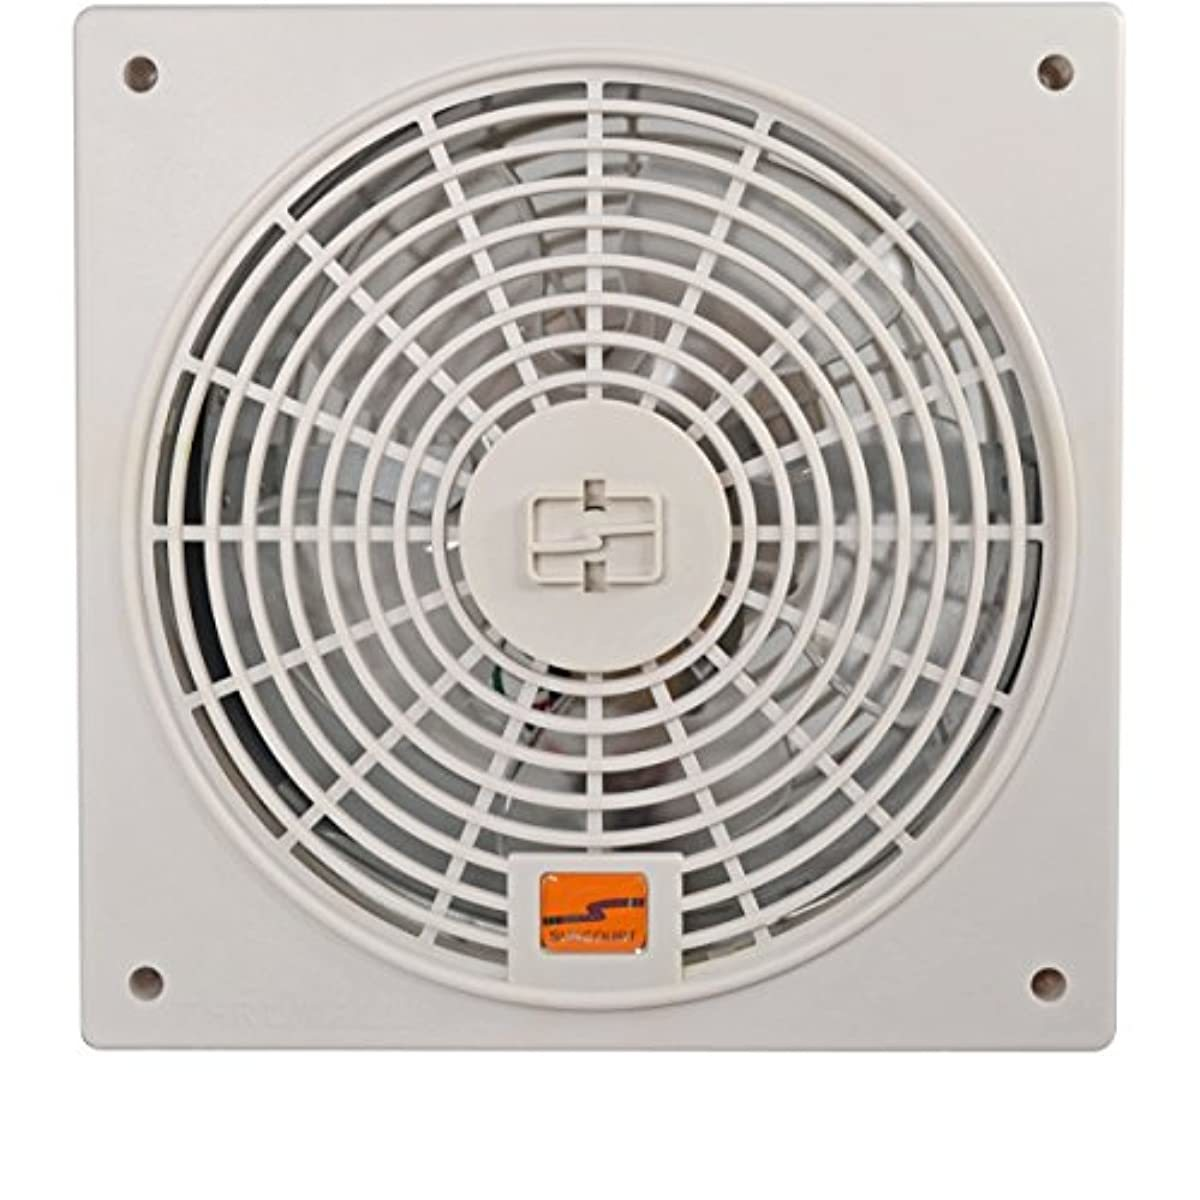 Suncourt TW408 ThruWall 2 Speed Room to Room Wall Mounted Air Flow Transfer Fan with 10 Foot Power Cord and Installation Kit, Whtie